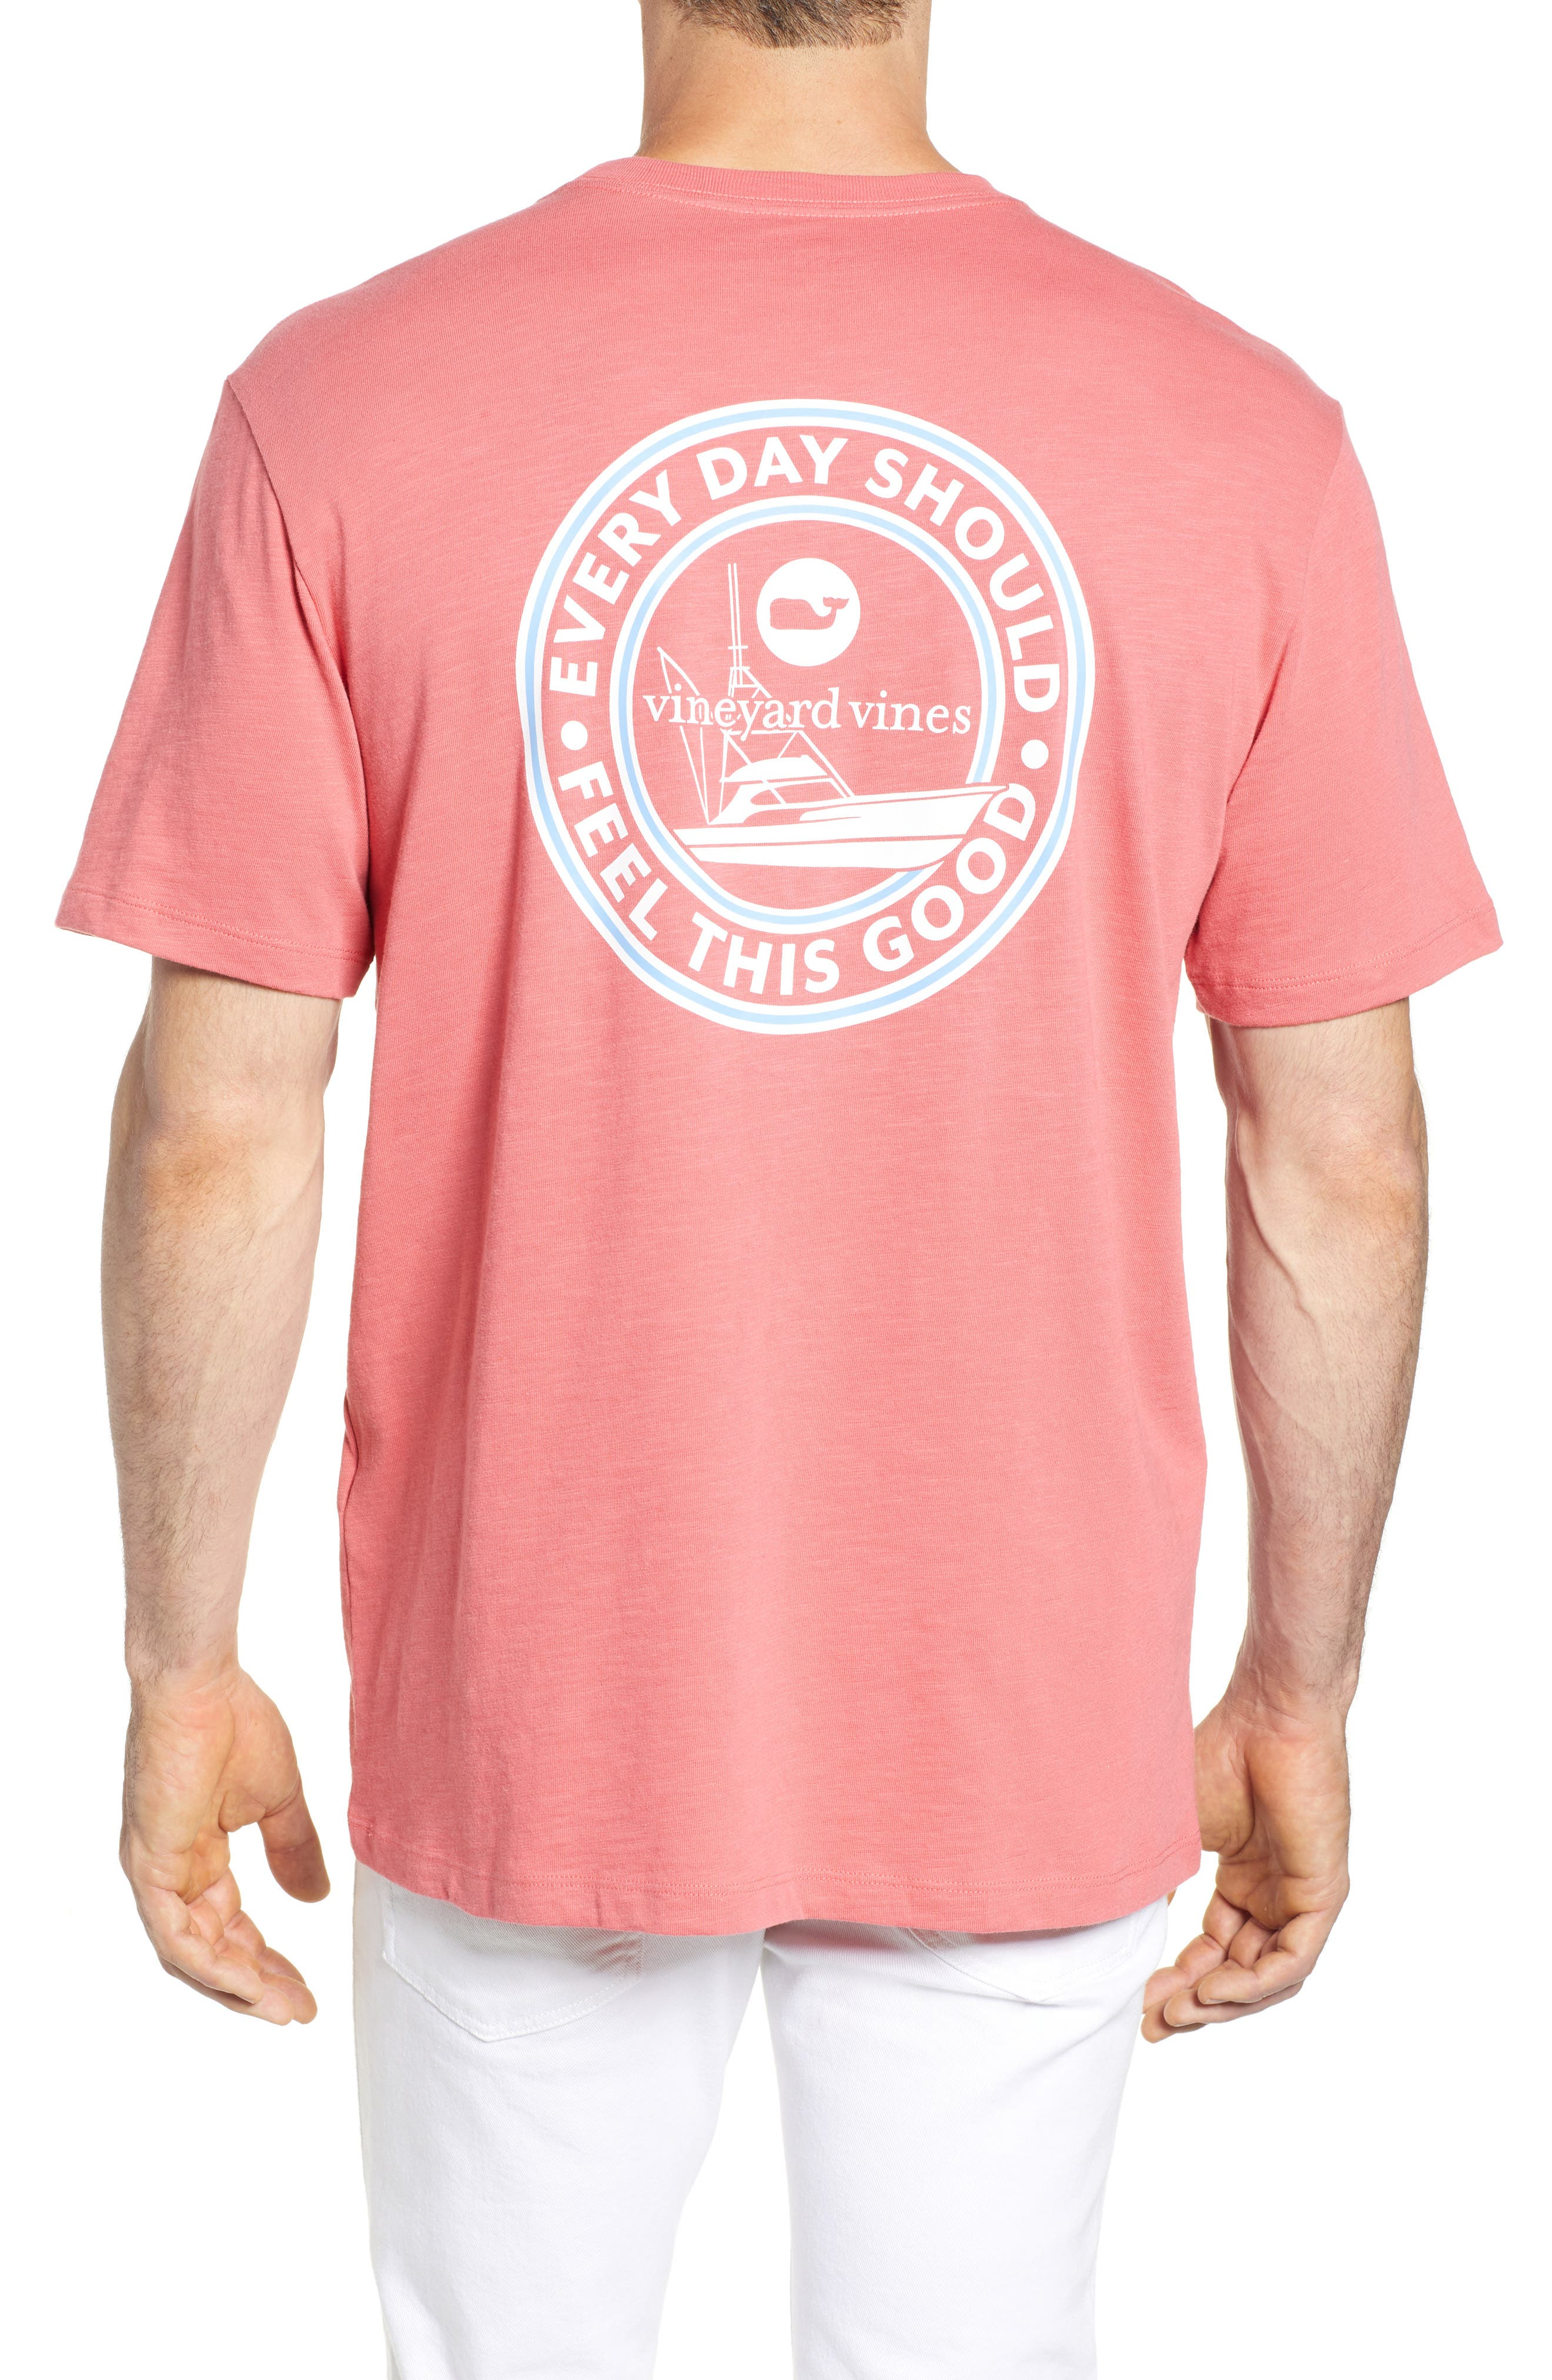 VINEYARD VINES,                             Every Day Should Feel This Good Pocket T-Shirt,                             Alternate thumbnail 2, color,                             628